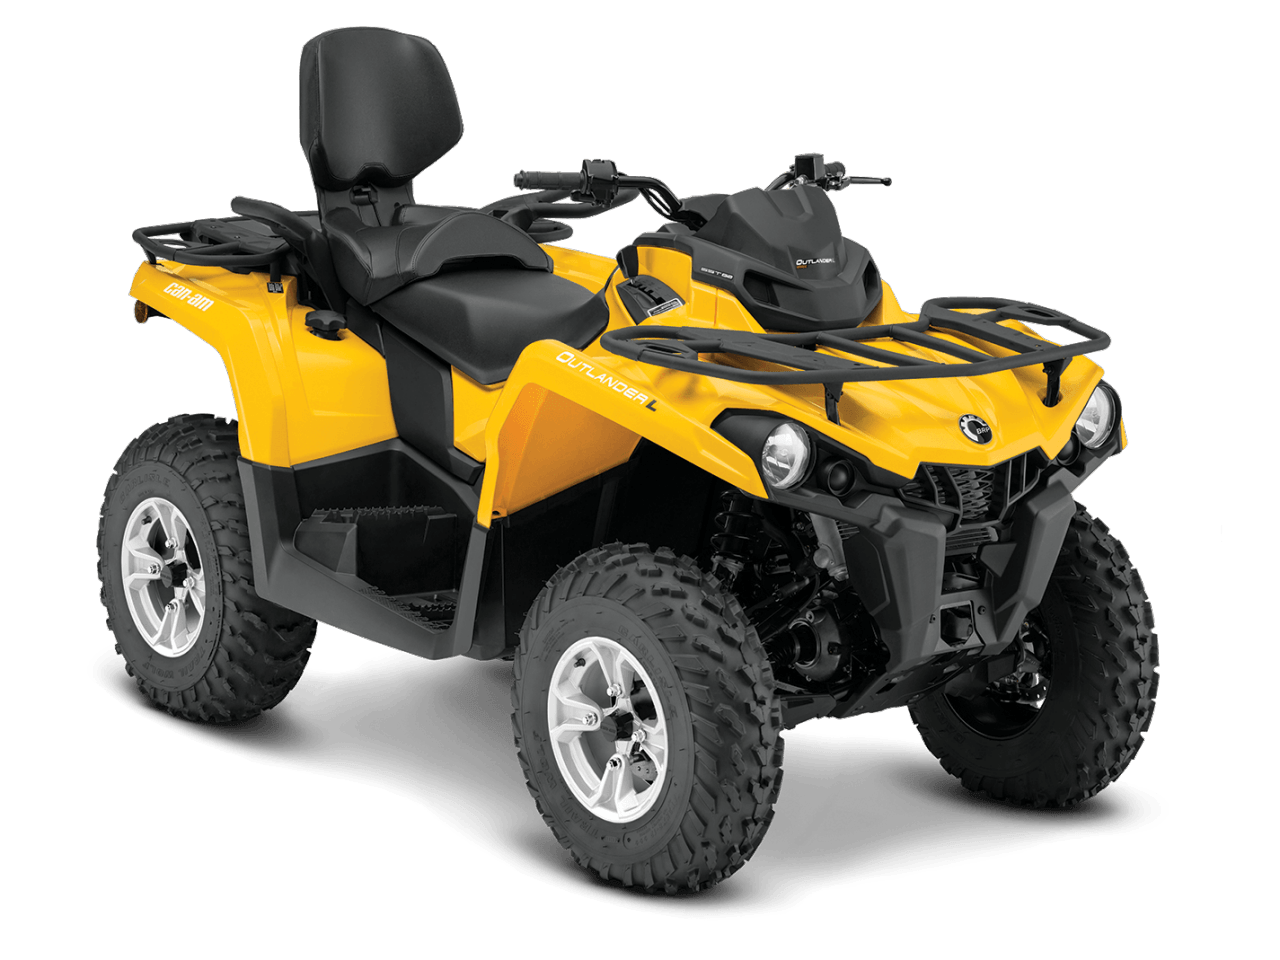 2016 Can-Am Outlander L MAX DPS 450 in Moorpark, California